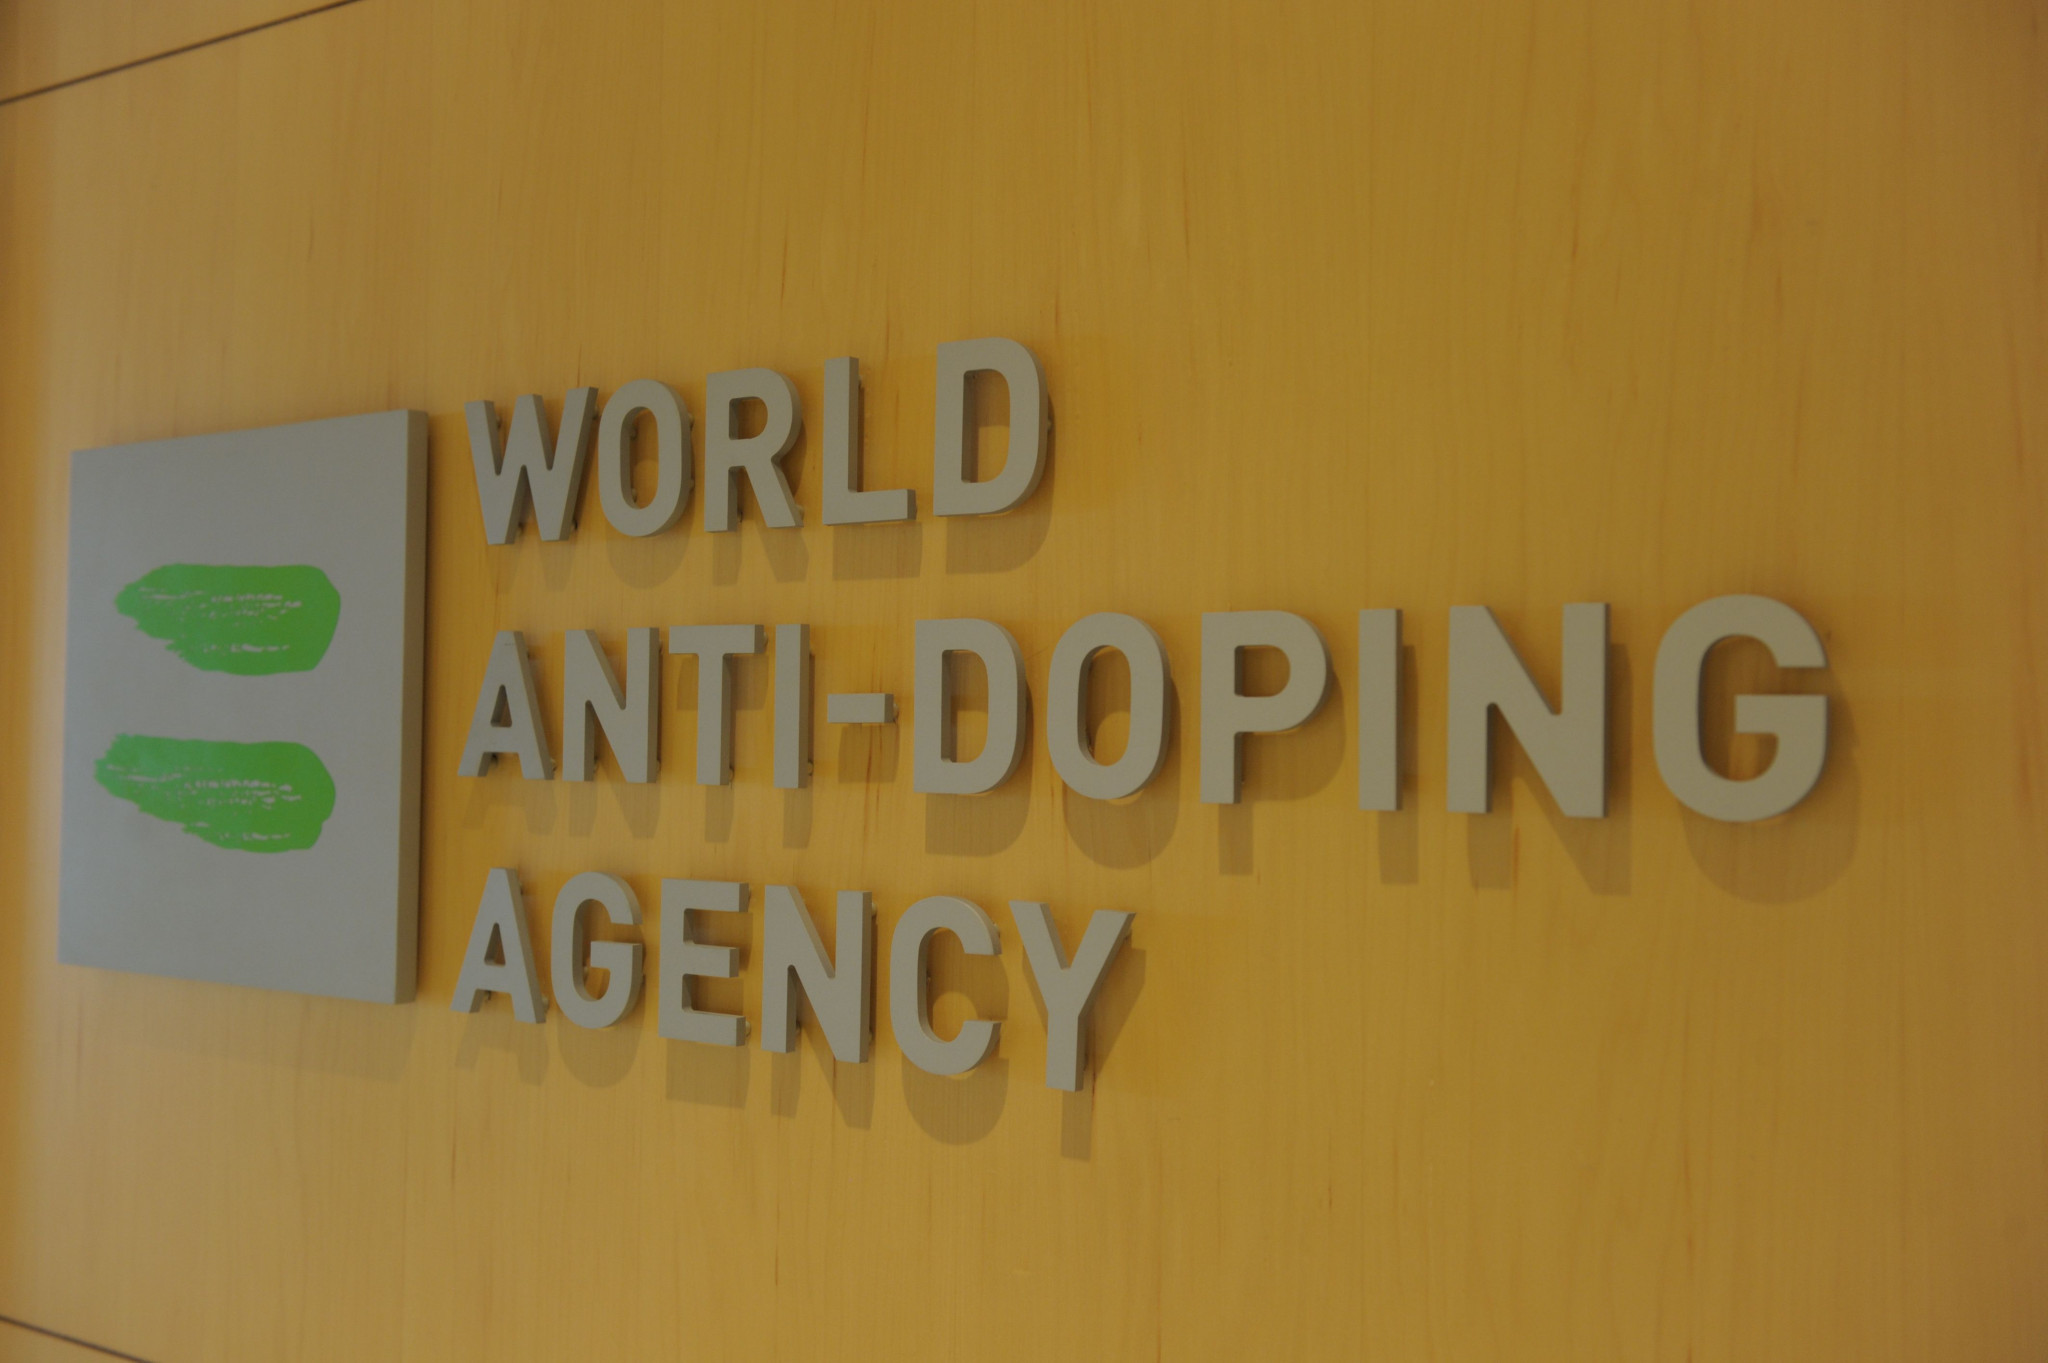 The World Anti-Doping Agency said it was not possible to comment while the case was ongoing ©Getty Images